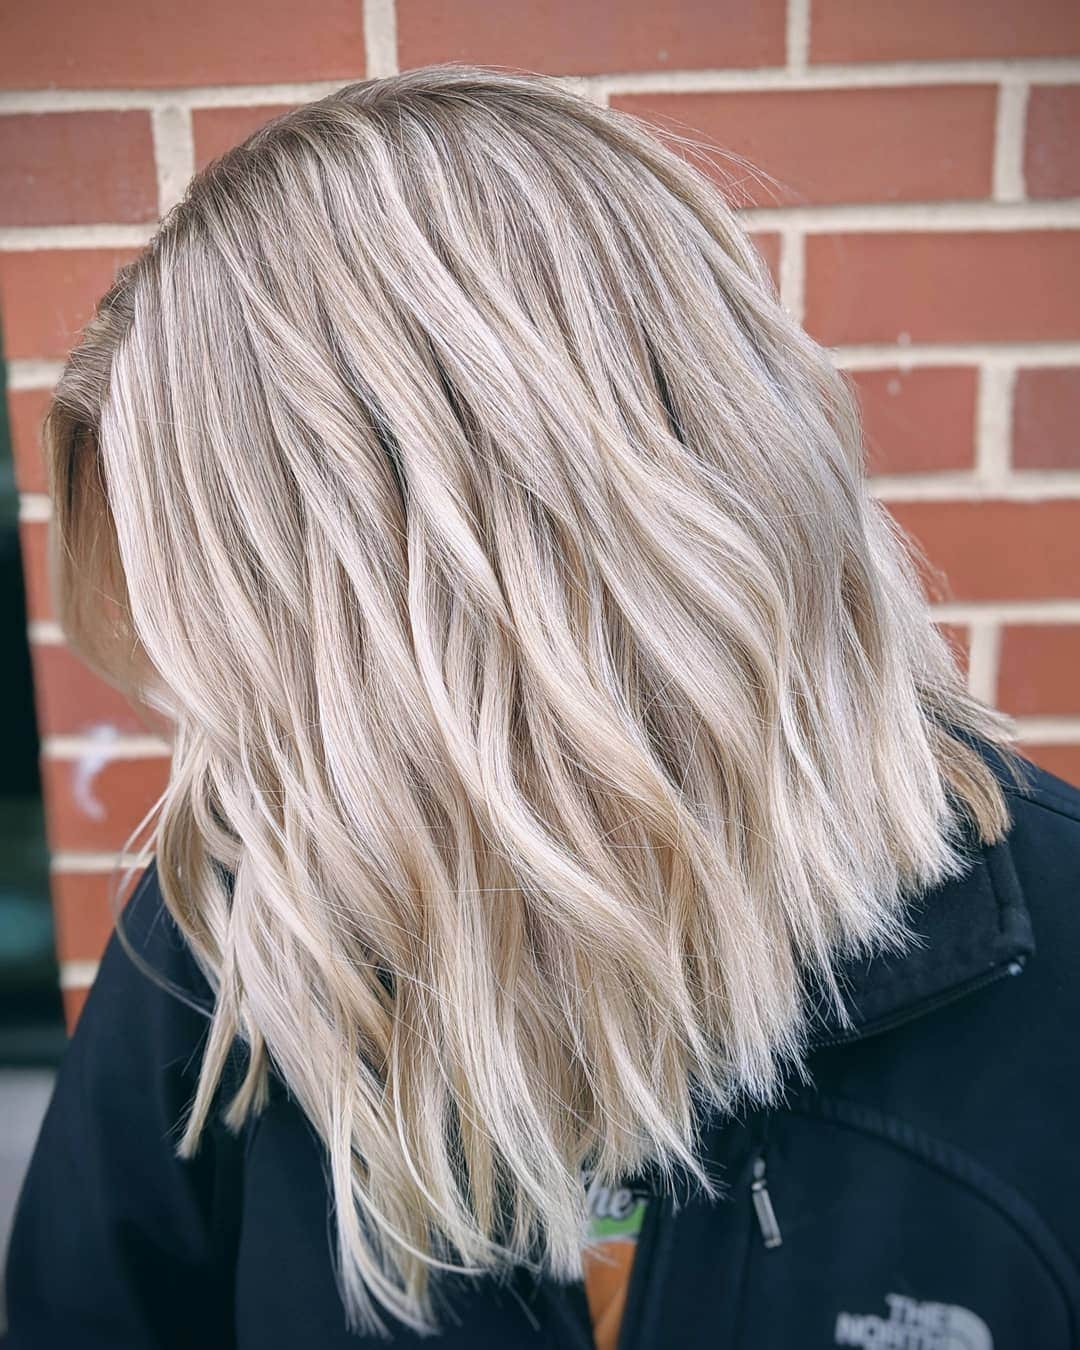 woman with blunt blonde wavy lob